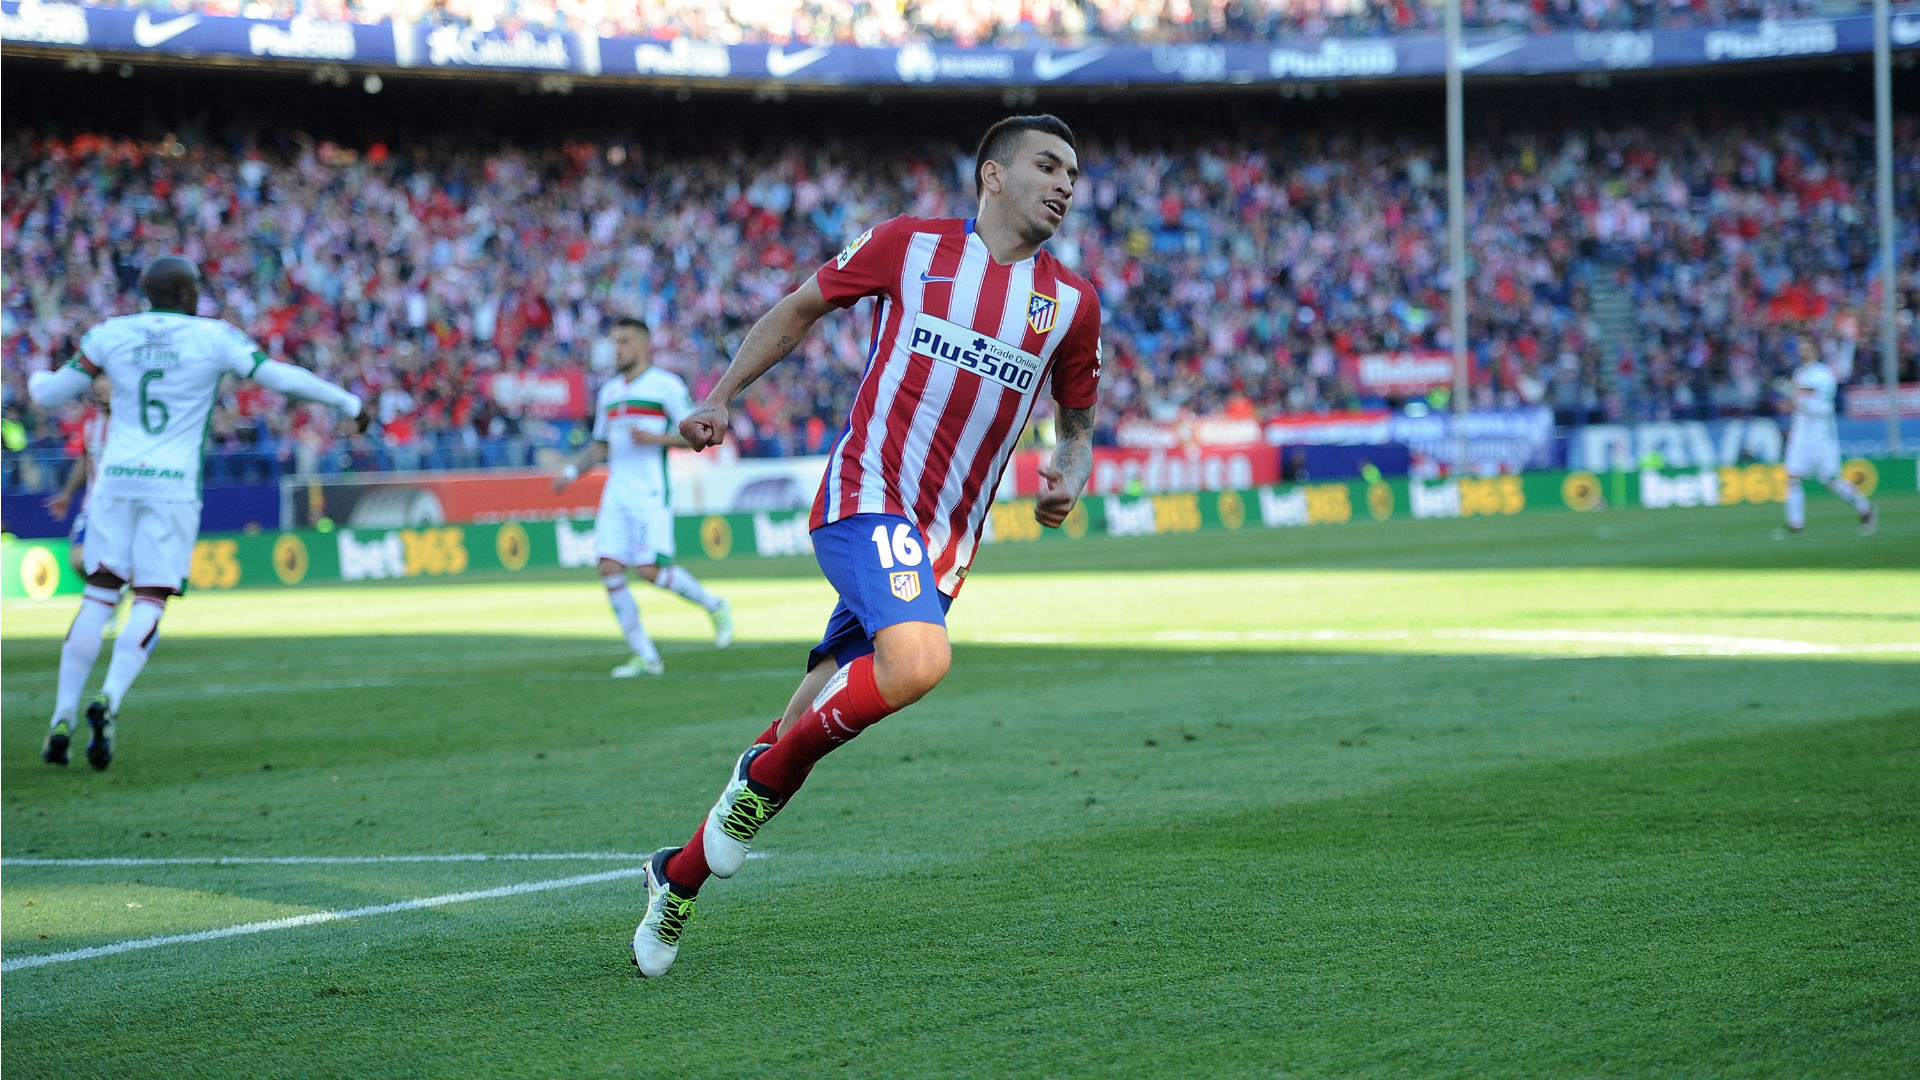 Video: Atletico Madrid vs Malaga